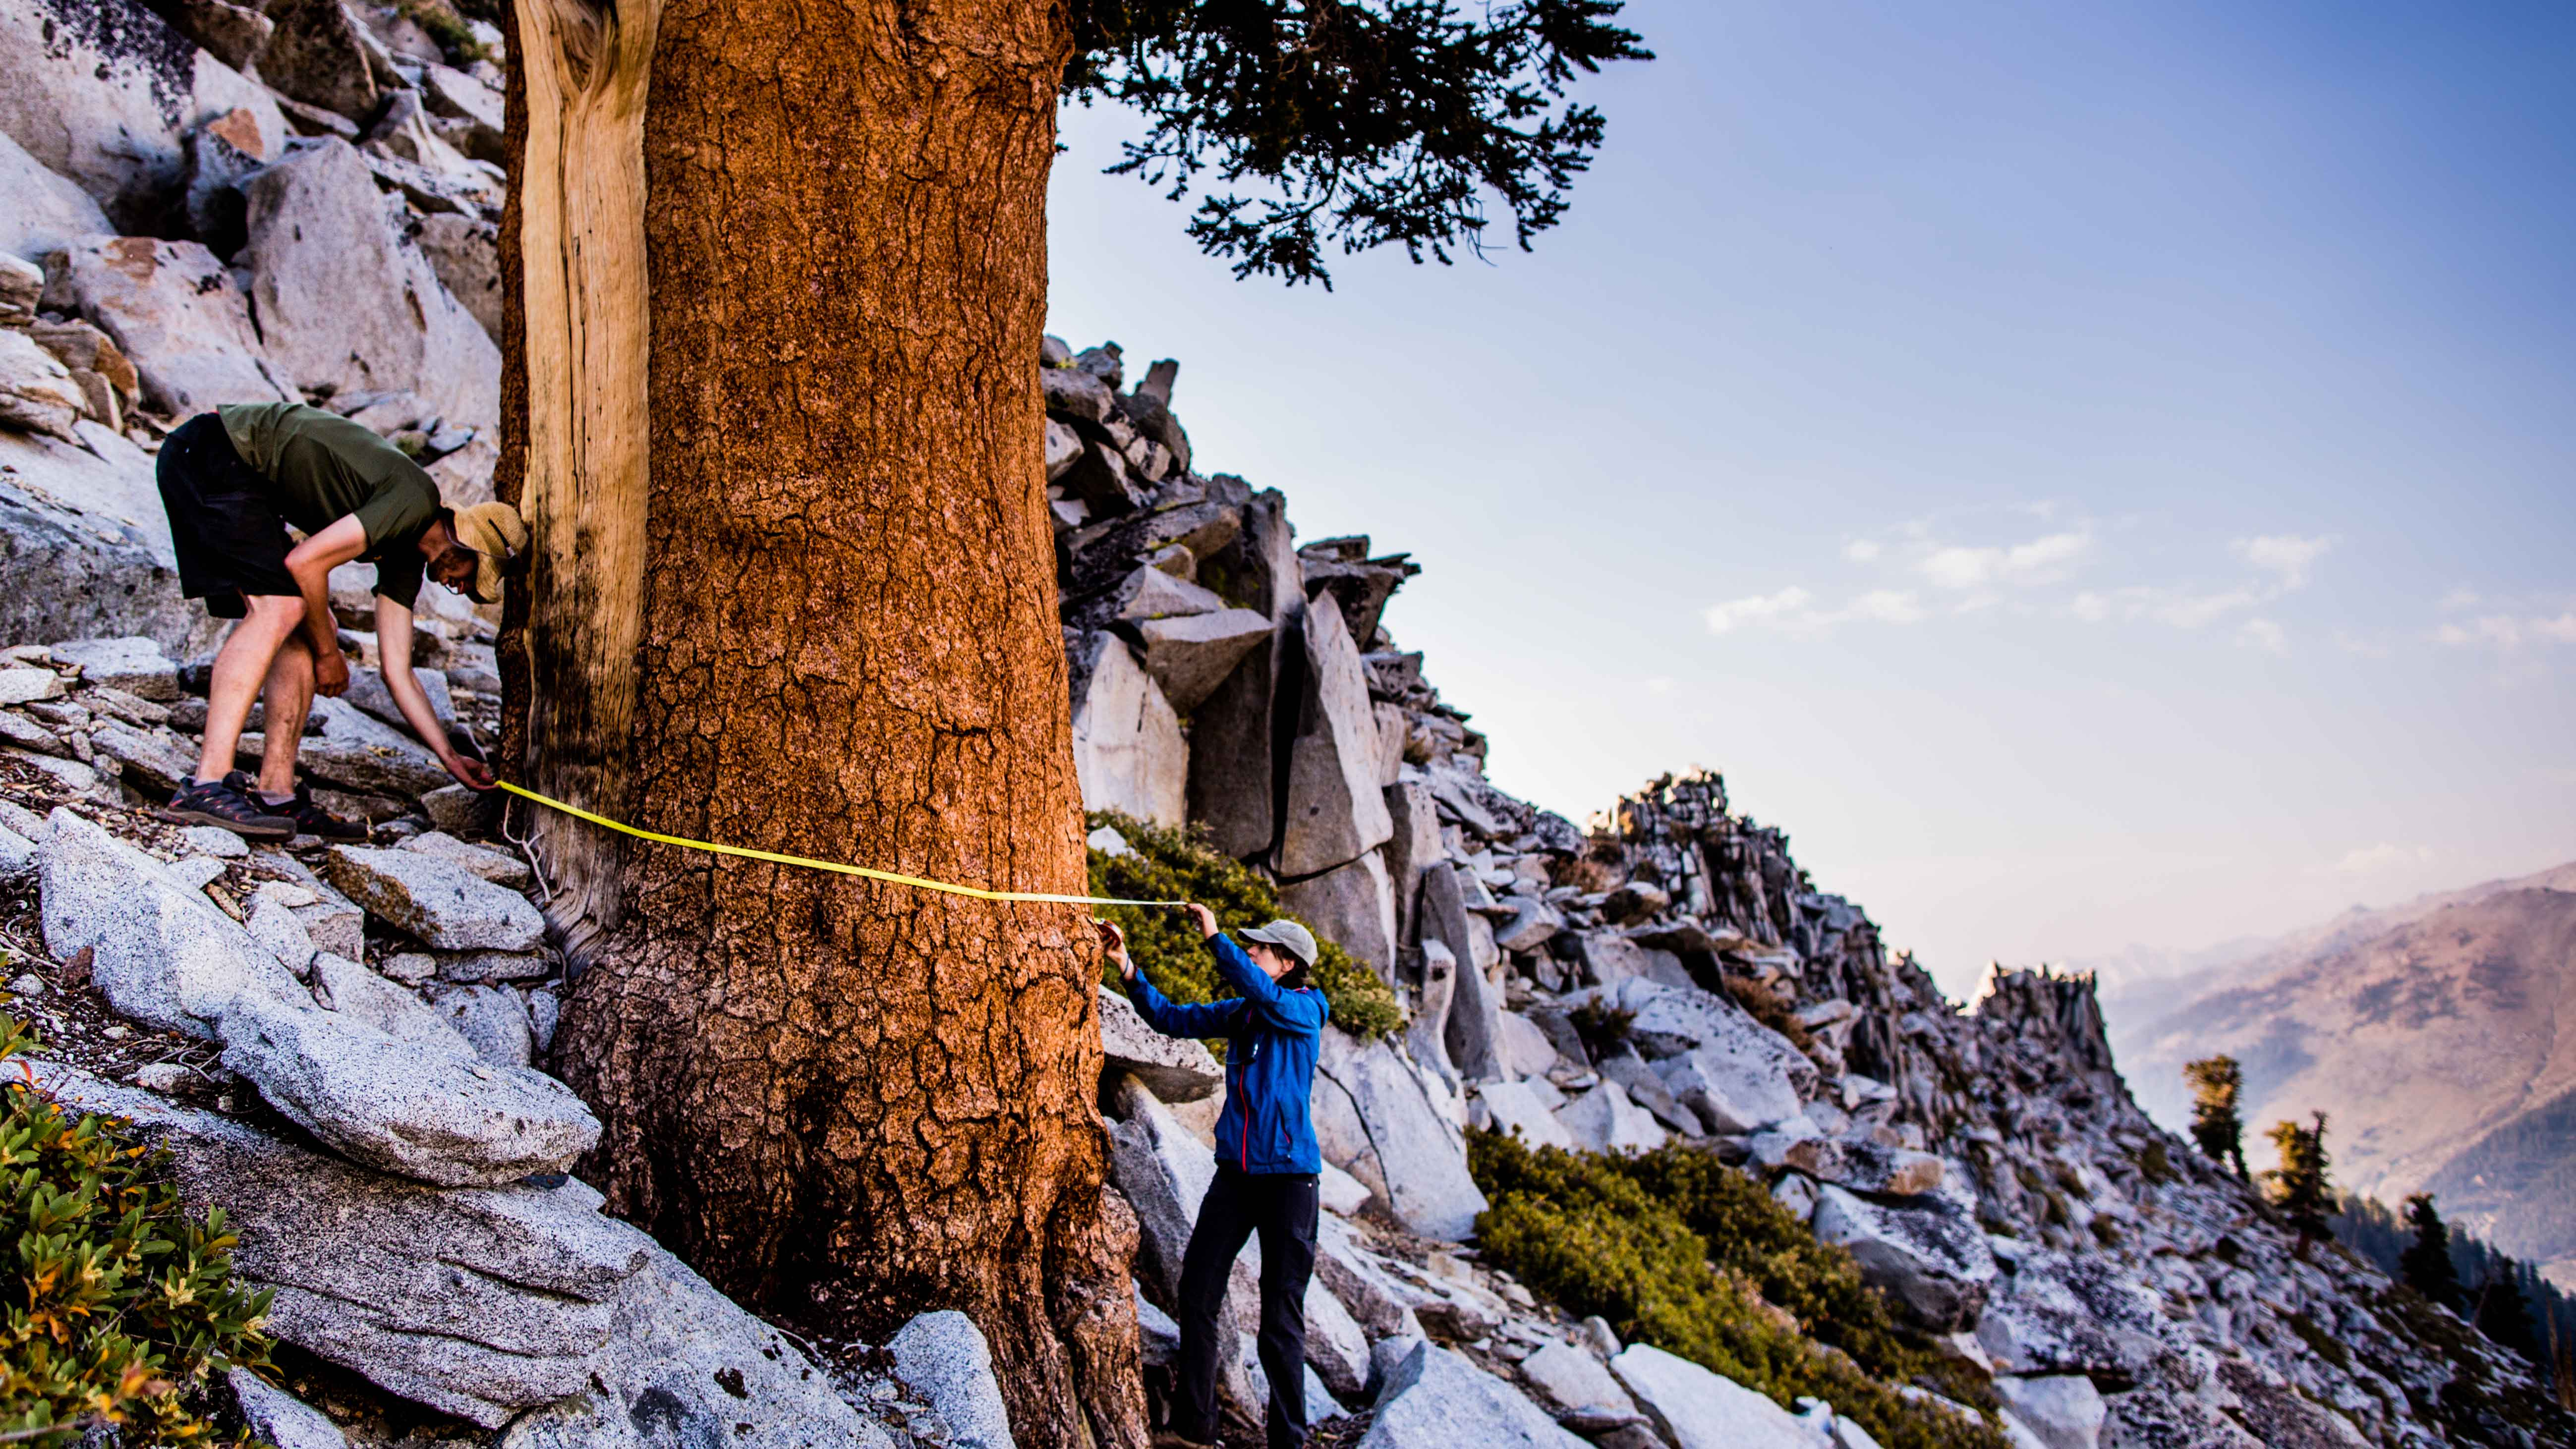 Two researchers measure a tree on a Sierra mountaintop